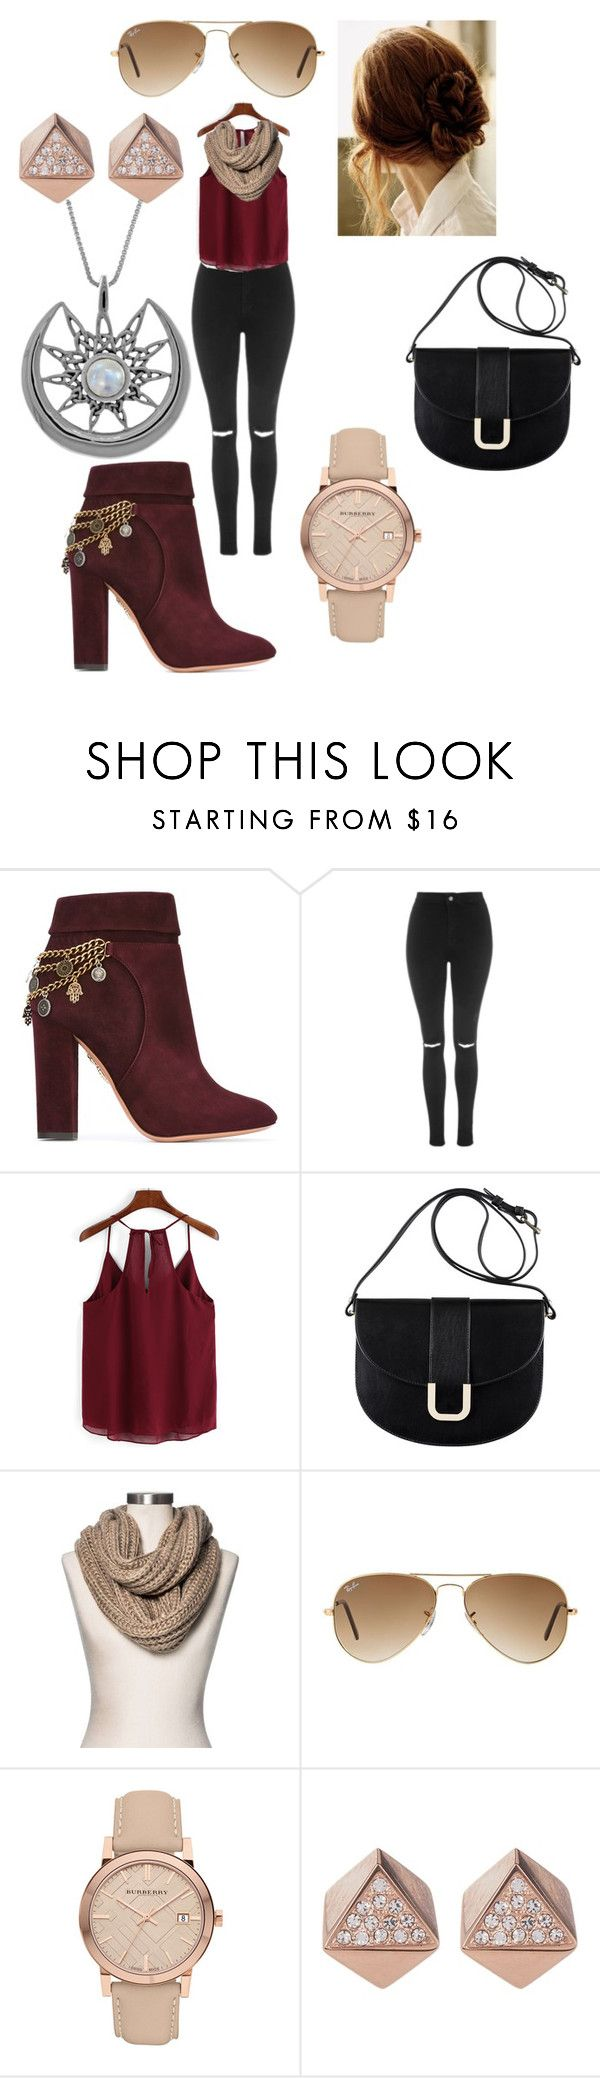 """""""Guardian"""" by jellyfishnamedsquid on Polyvore featuring Aquazzura, Topshop, A.P.C., Merona, Ray-Ban, Burberry, FOSSIL and Carolina Glamour Collection"""